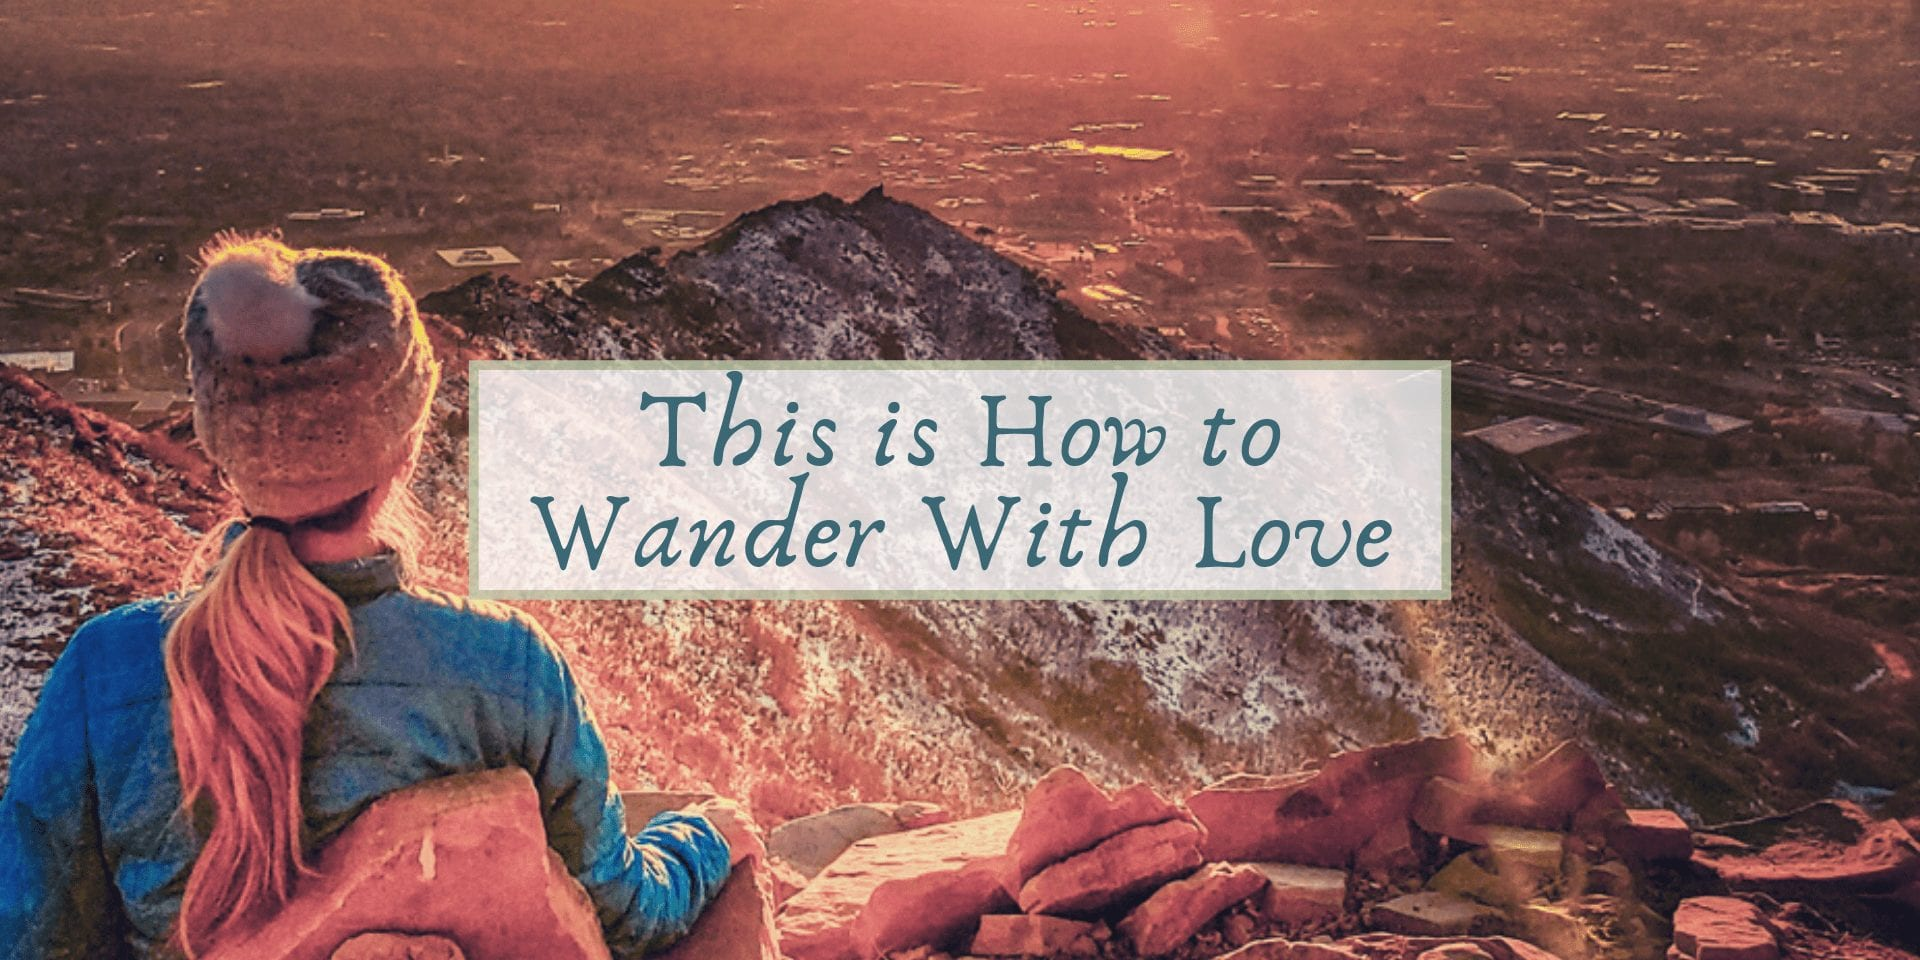 Wander With Love